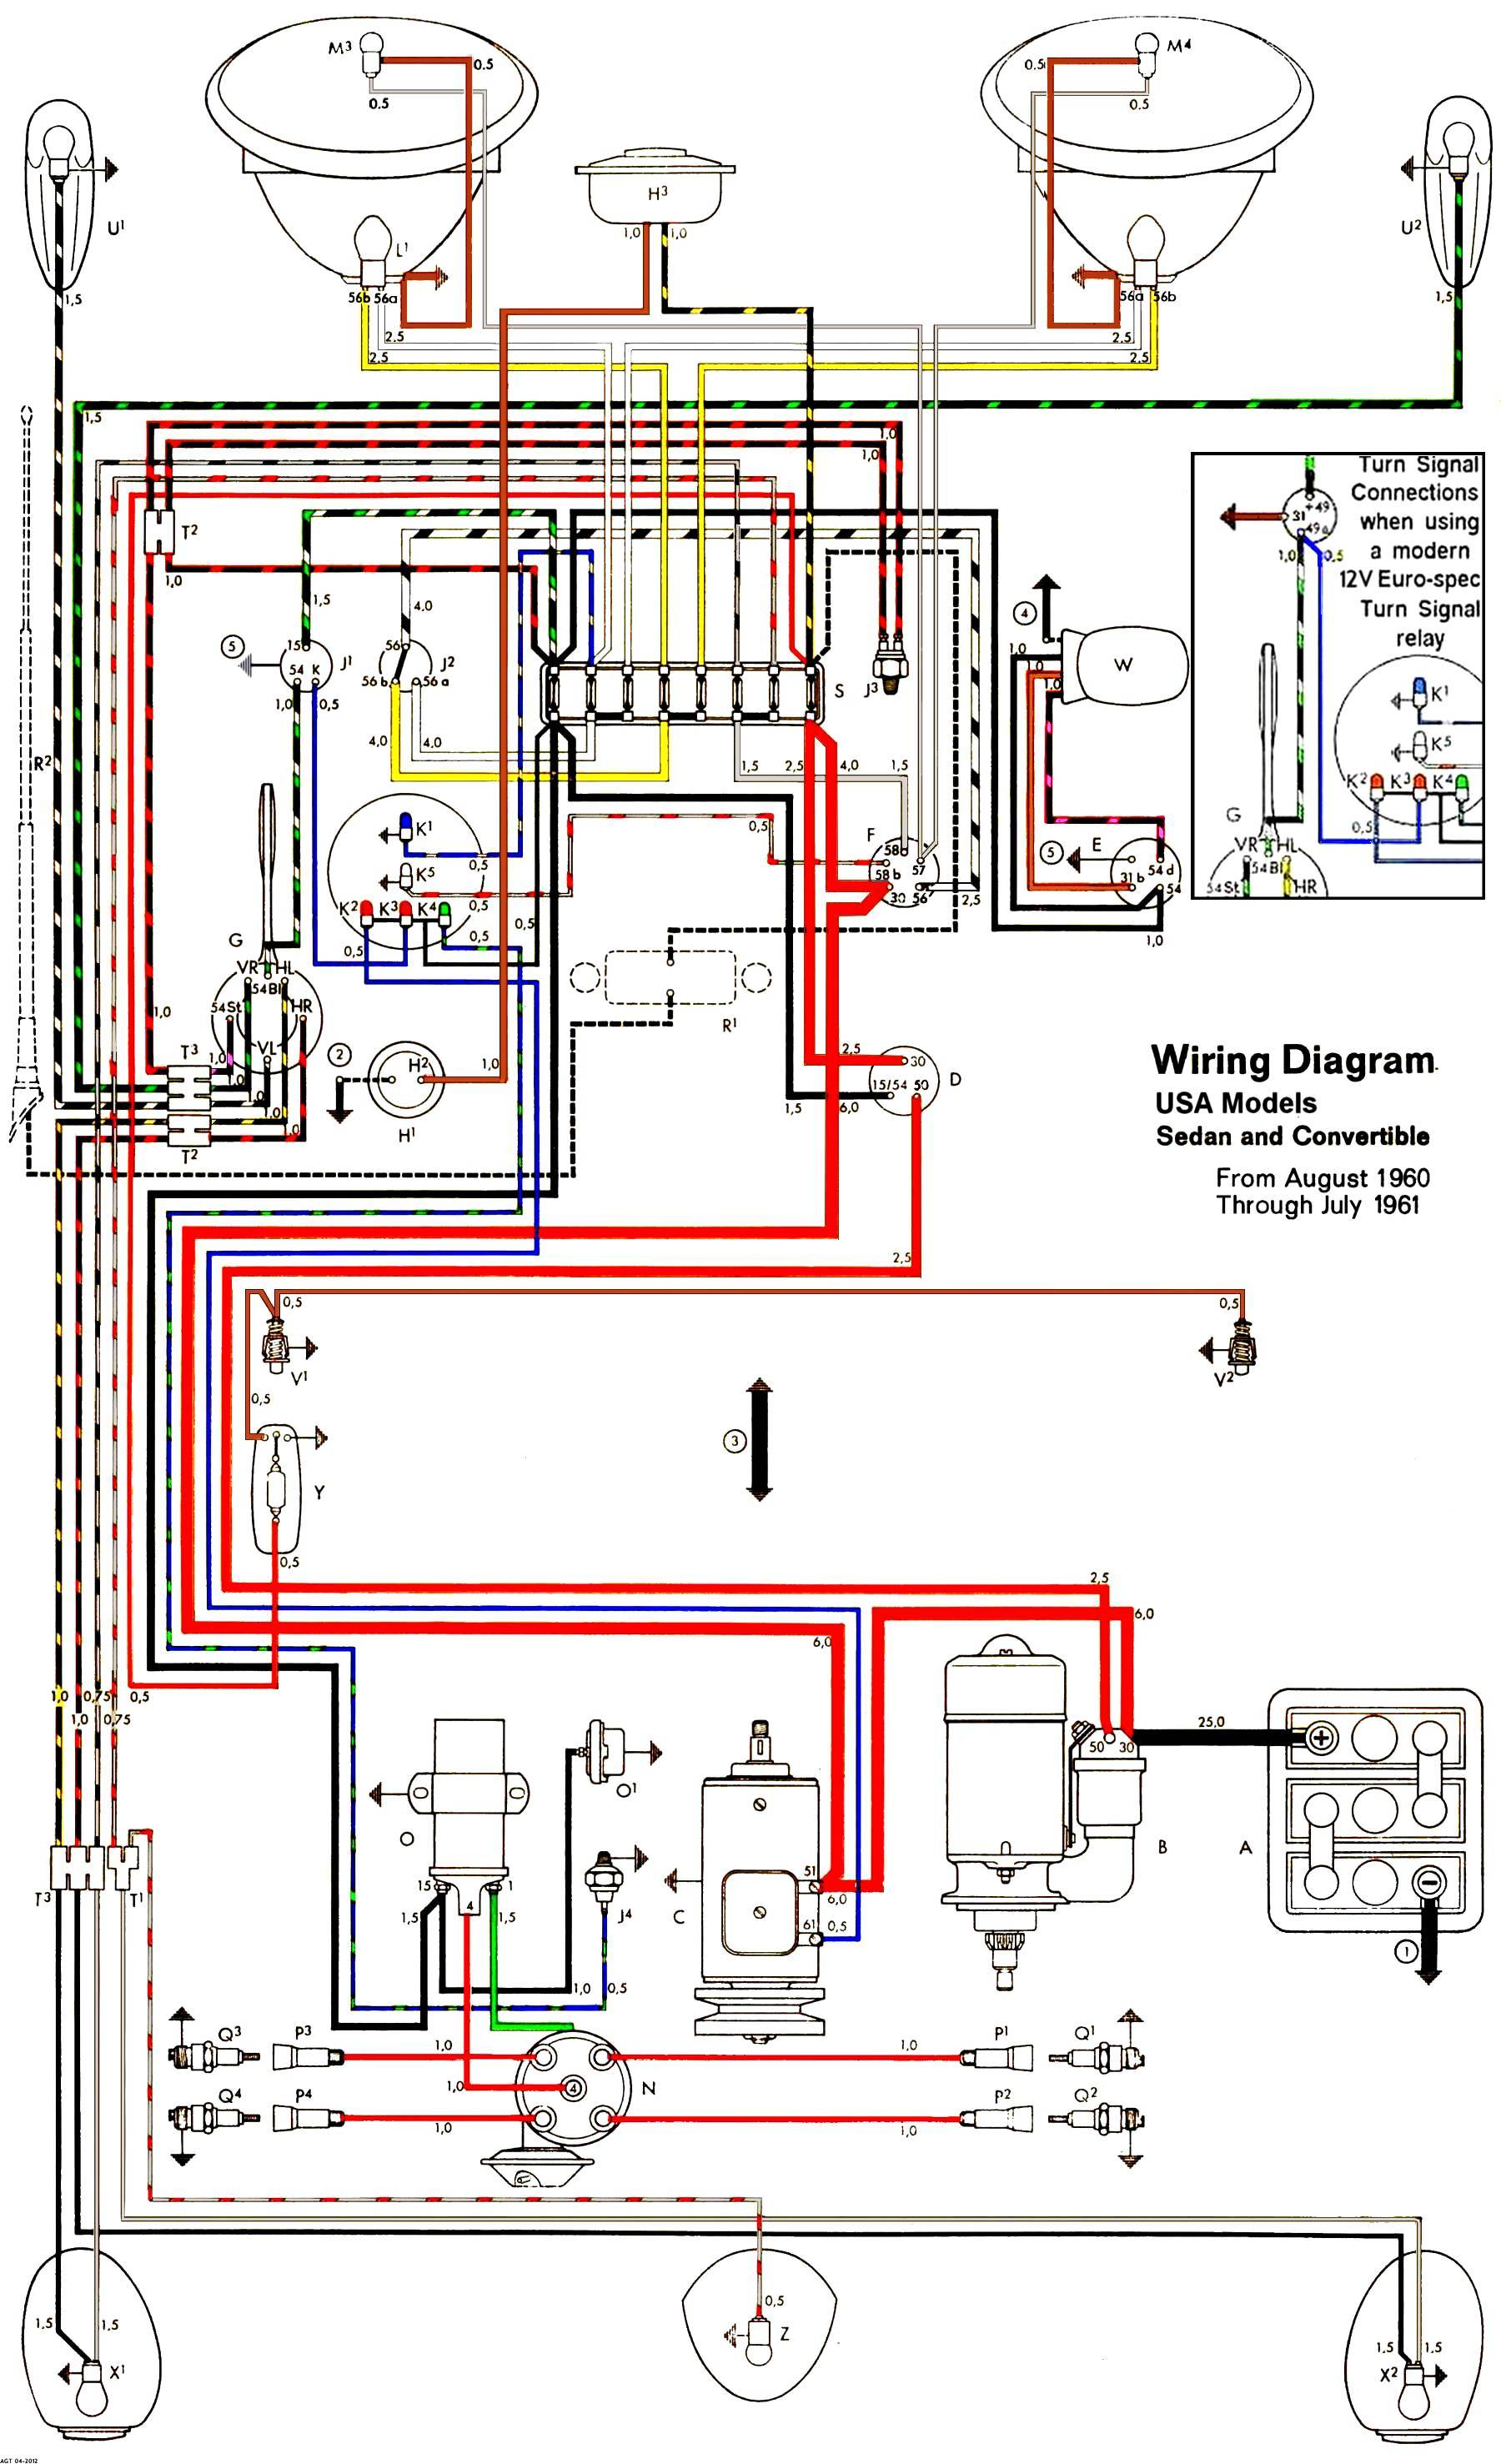 vw wiring diagrams wiring diagram1960 vw bug wiring wiring diagramthesamba com type 1 wiring diagrams 1960 vw bug antenna 1960